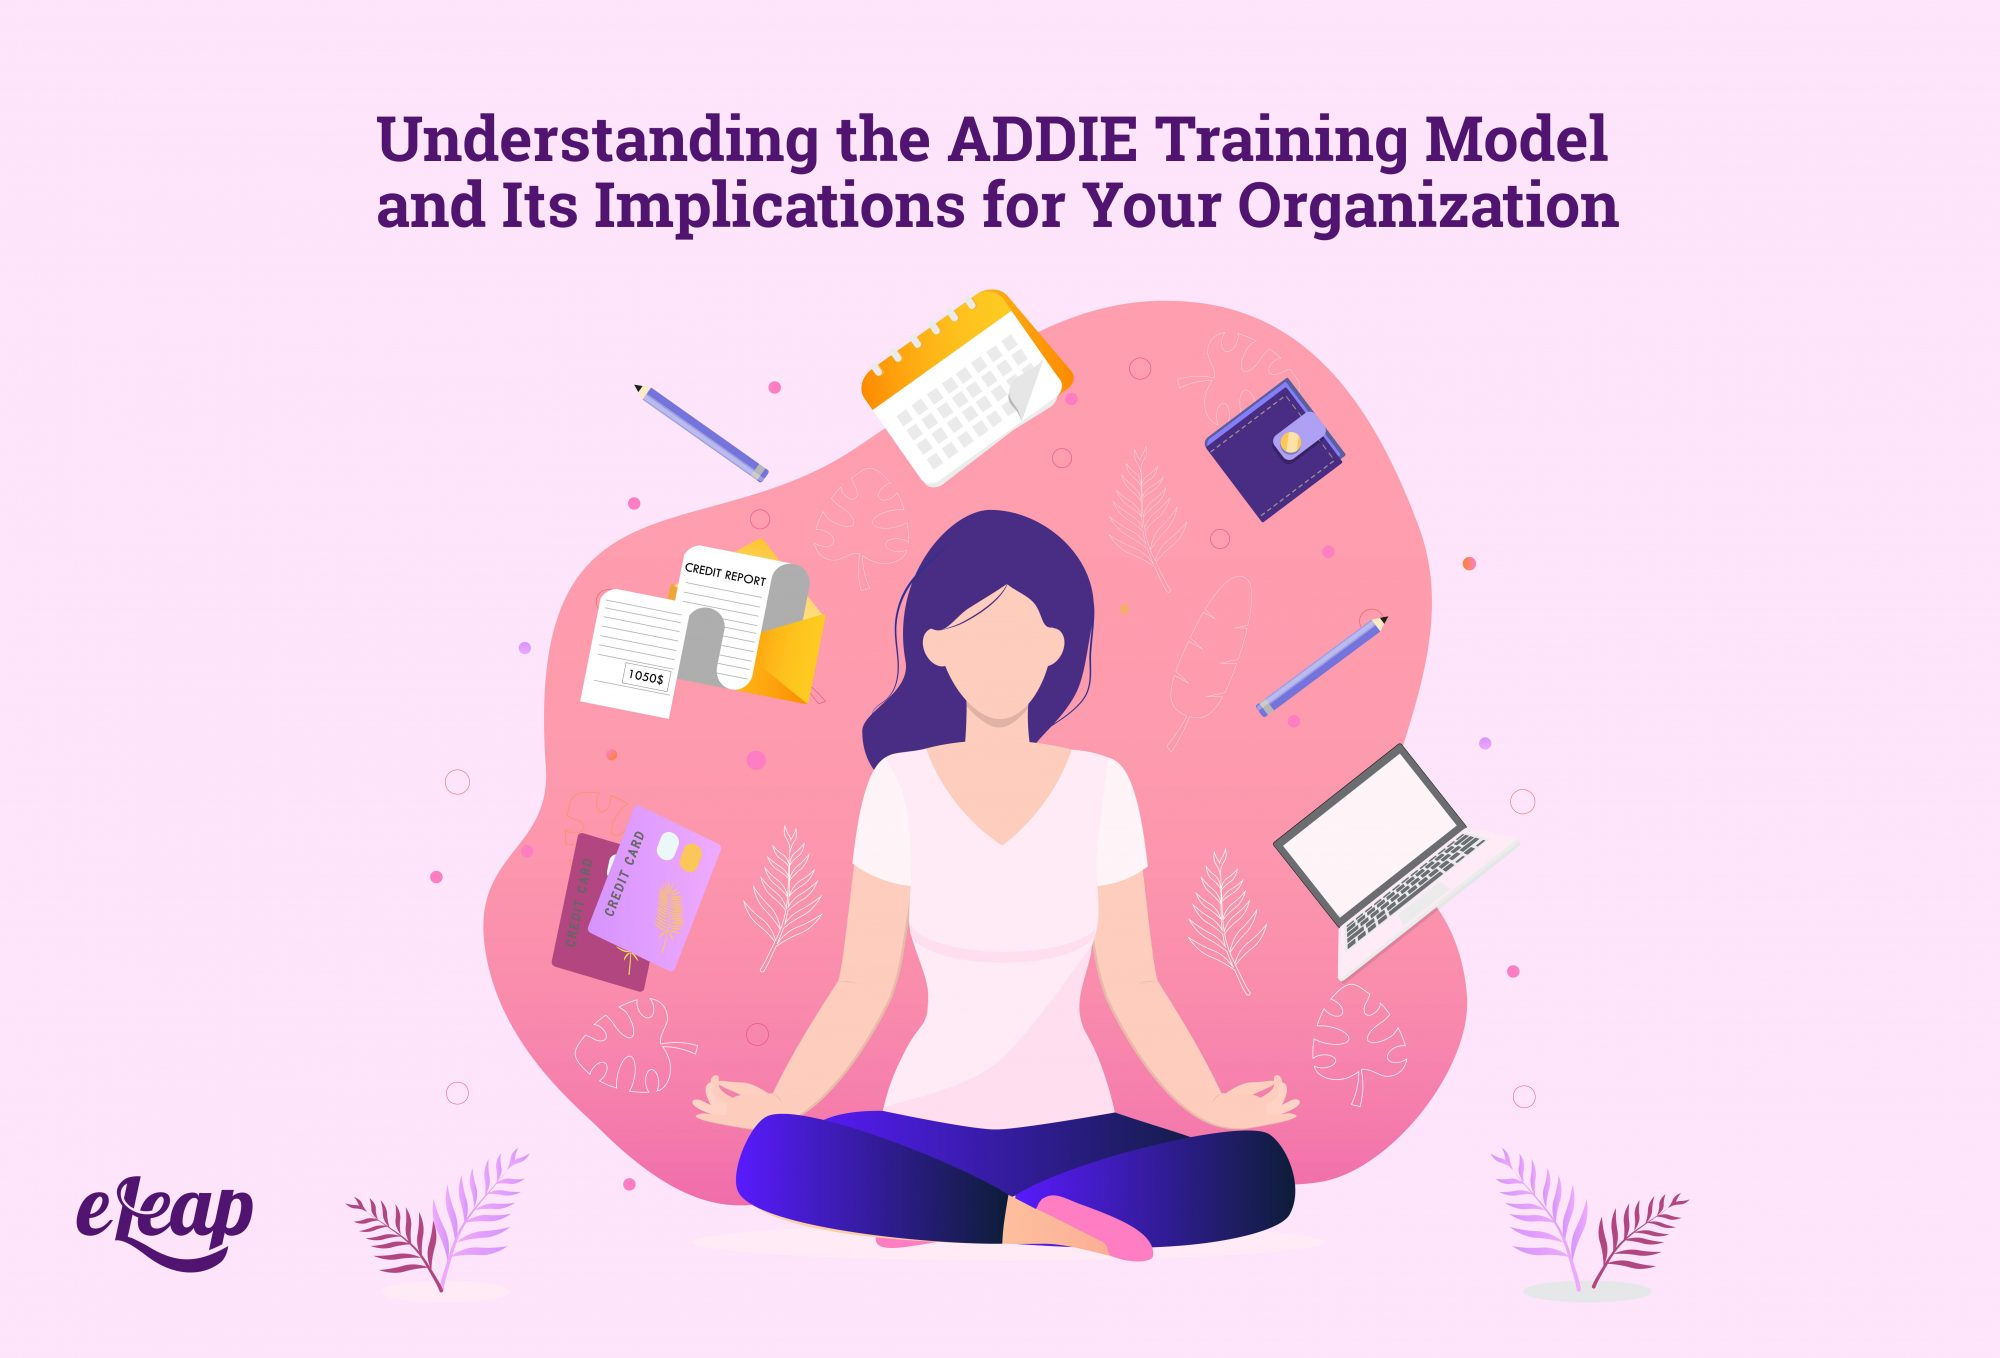 Understanding the ADDIE Training Model and Its Implications for Your Organization